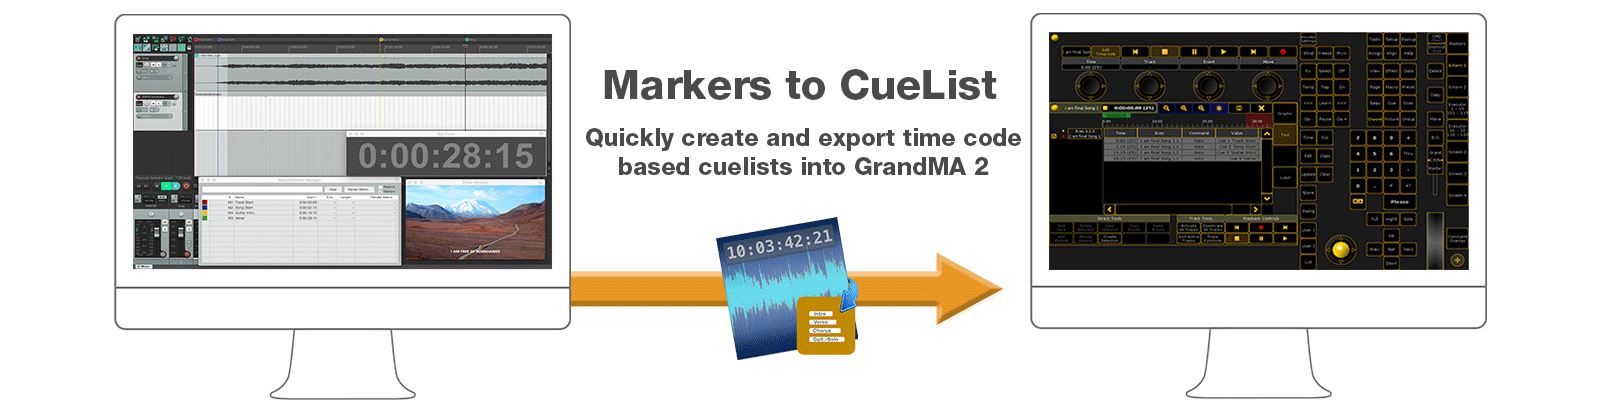 Markers to CueList